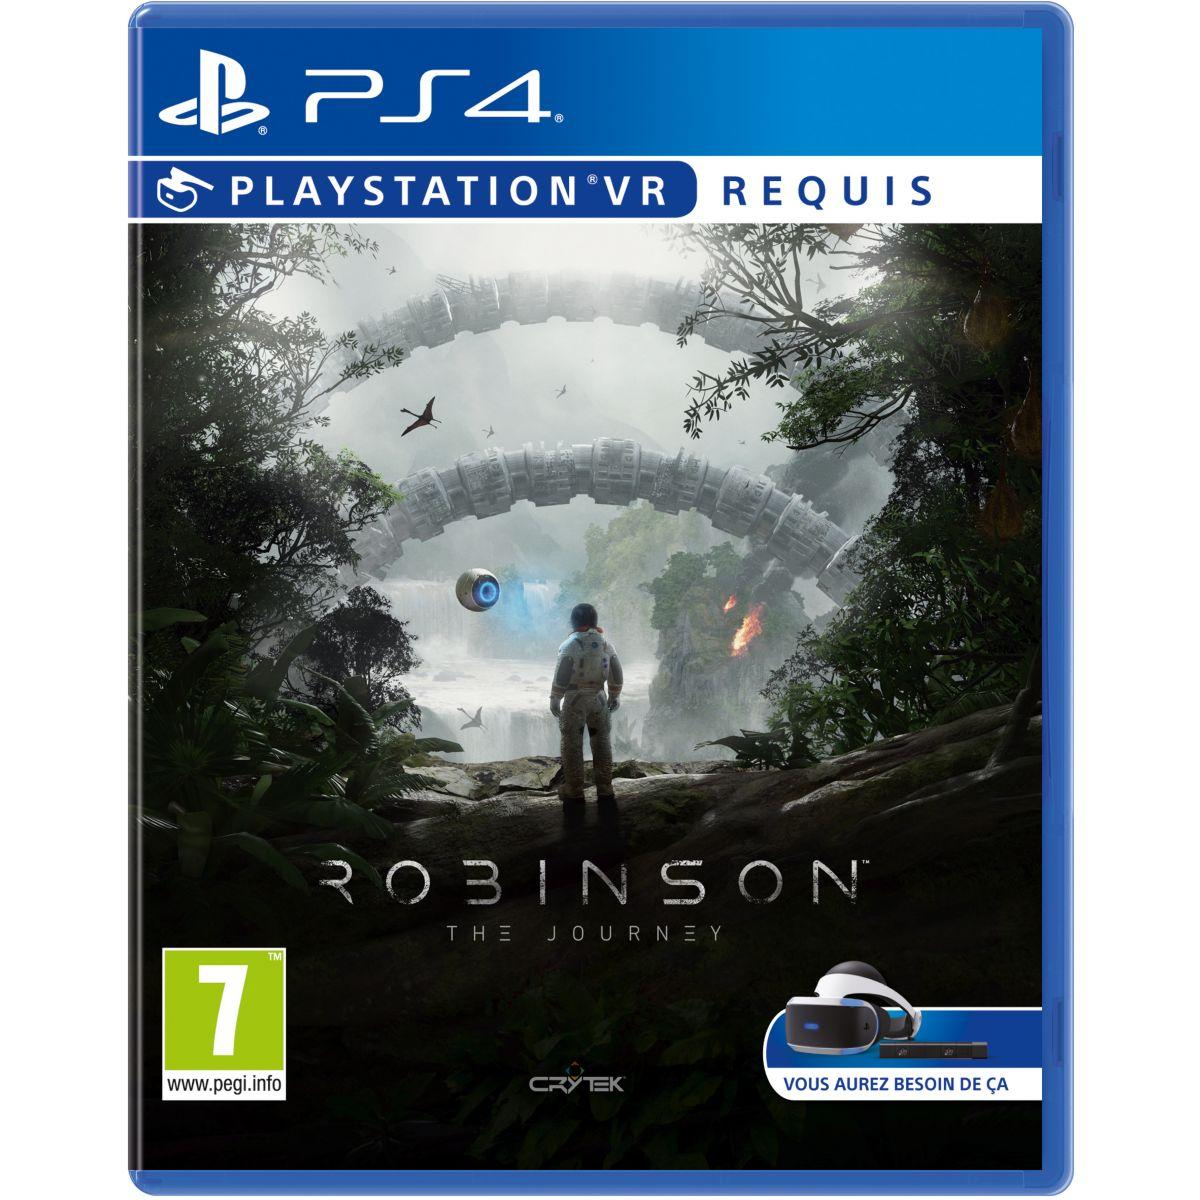 Jeu ps4 sony jeu vr robinson the journey (photo)